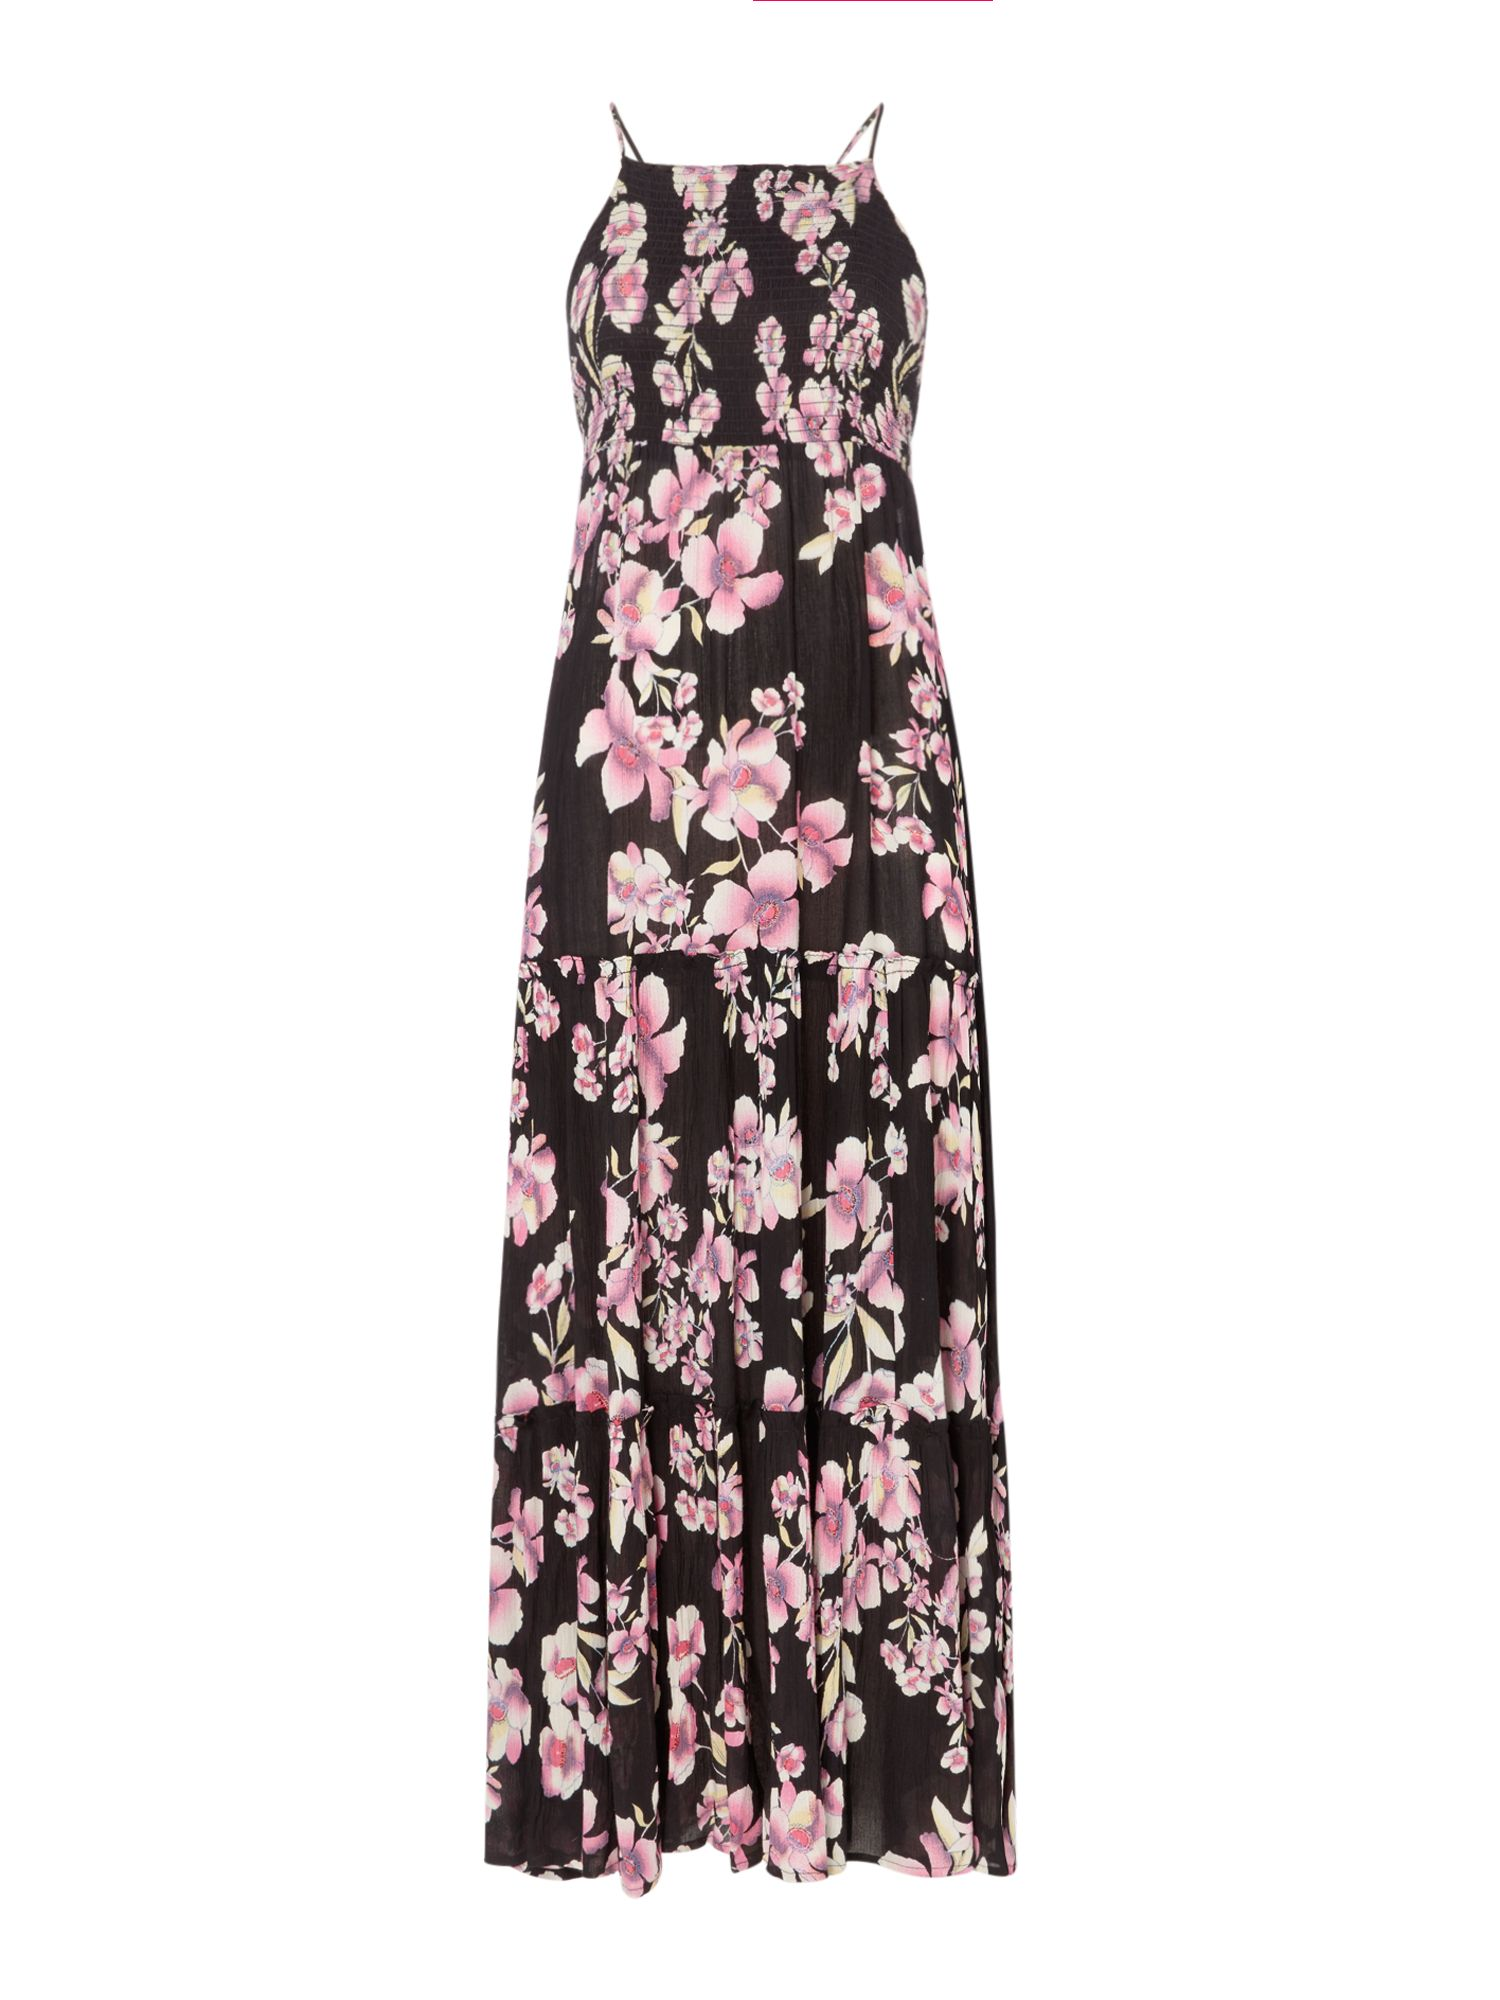 Free People Garden Party Floral Maxi Dress, Multi-Coloured